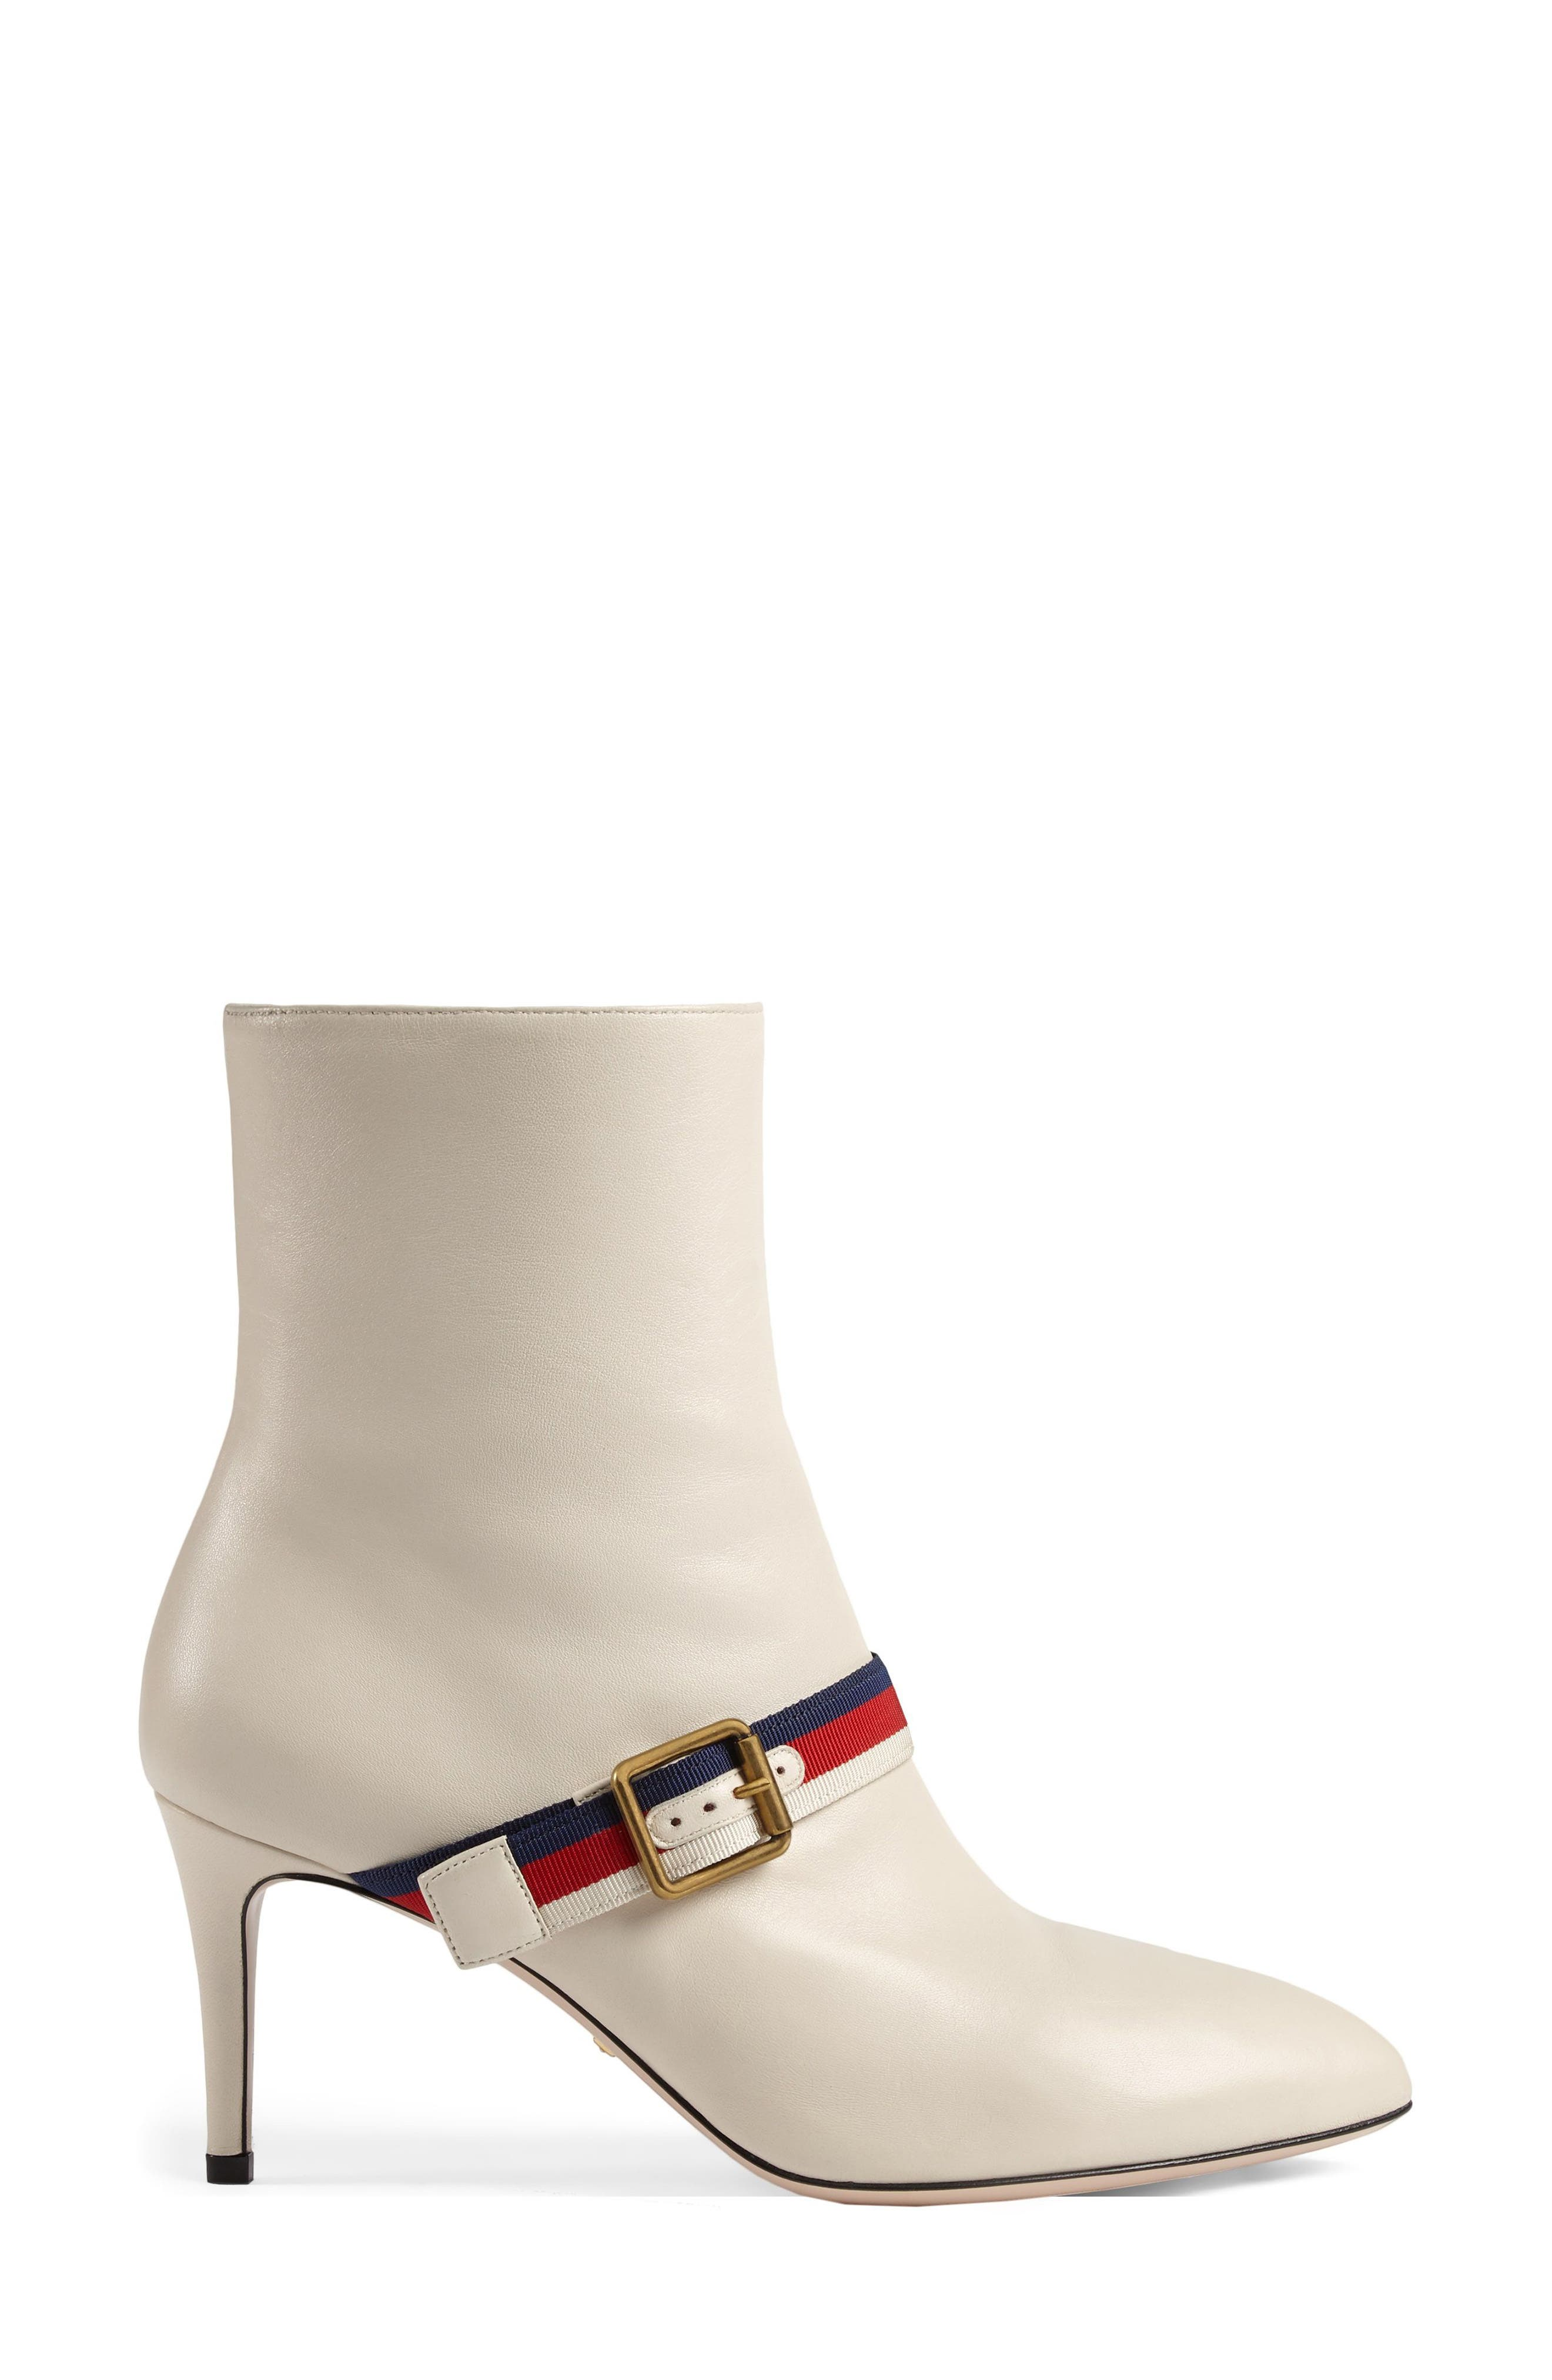 Alternate Image 1 Selected - Gucci Sylvie Strap Ankle Boot (Women)